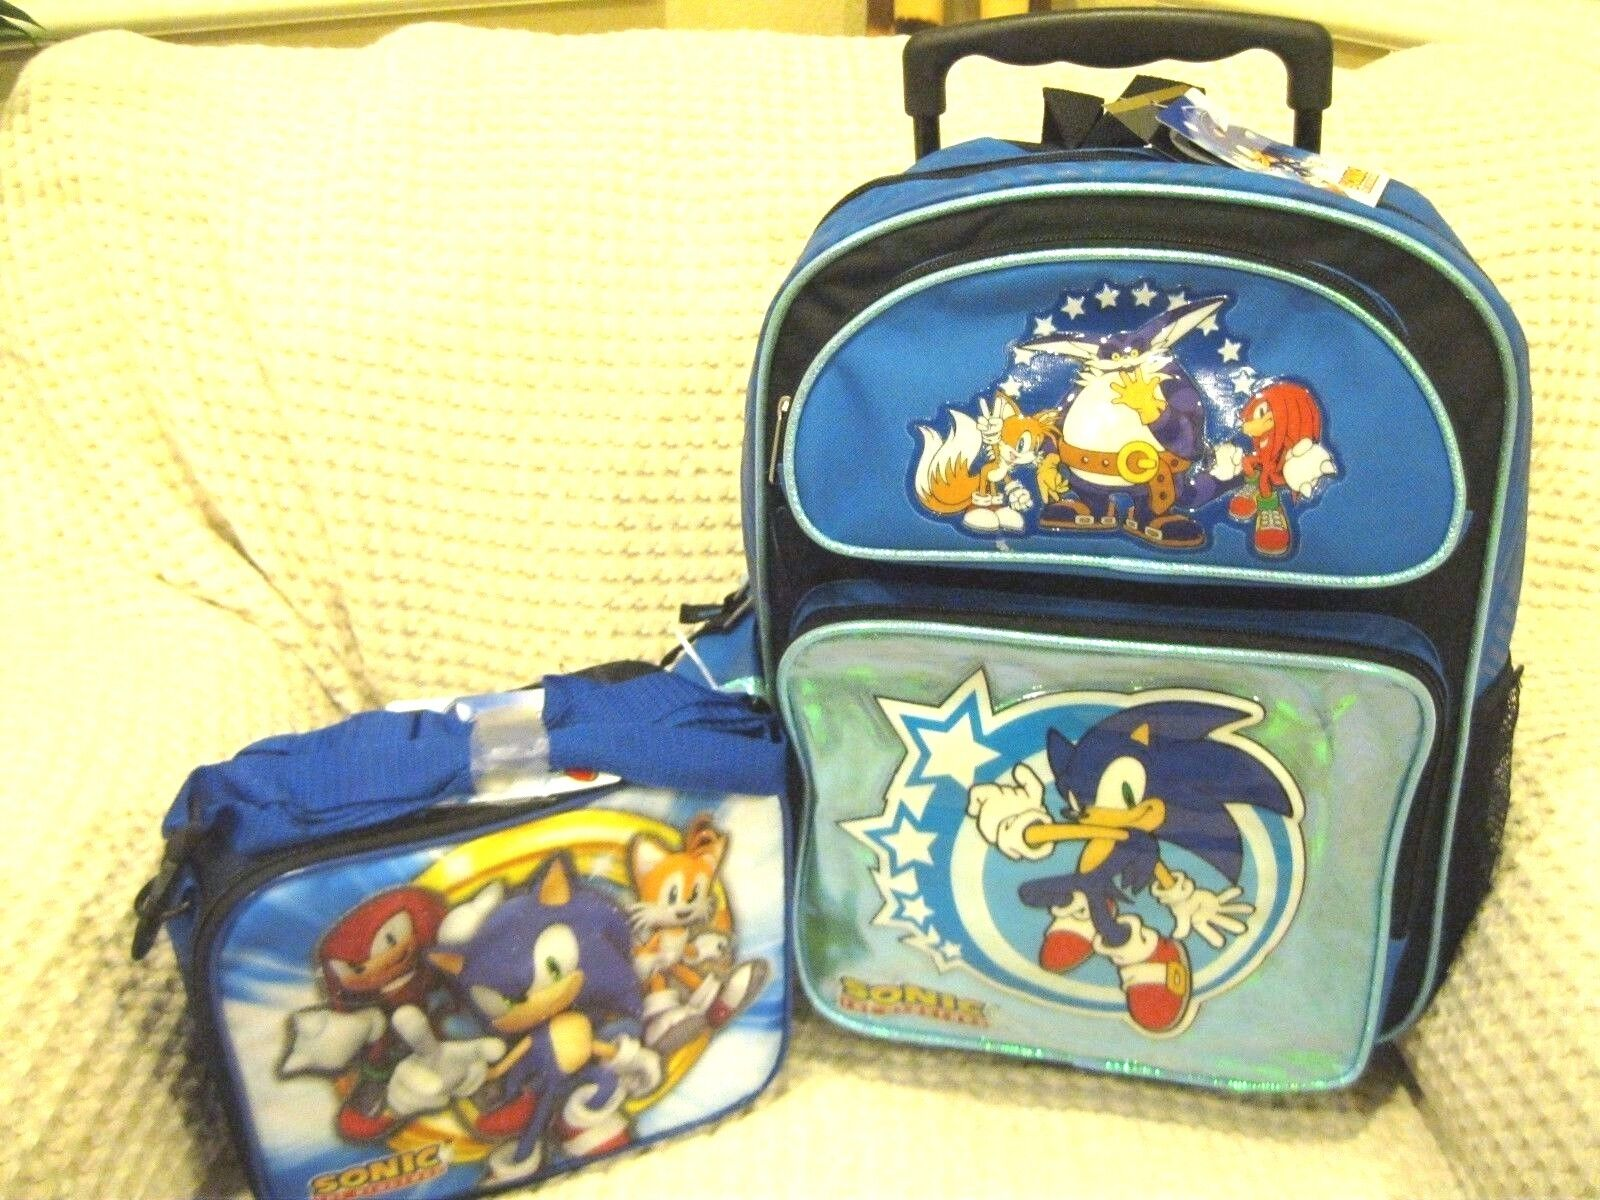 3009c5d5c837 Blue Sonic the Hedgehog Rolling Backpack and Sonic,Knuckles,&Tail Lunchbox  Set